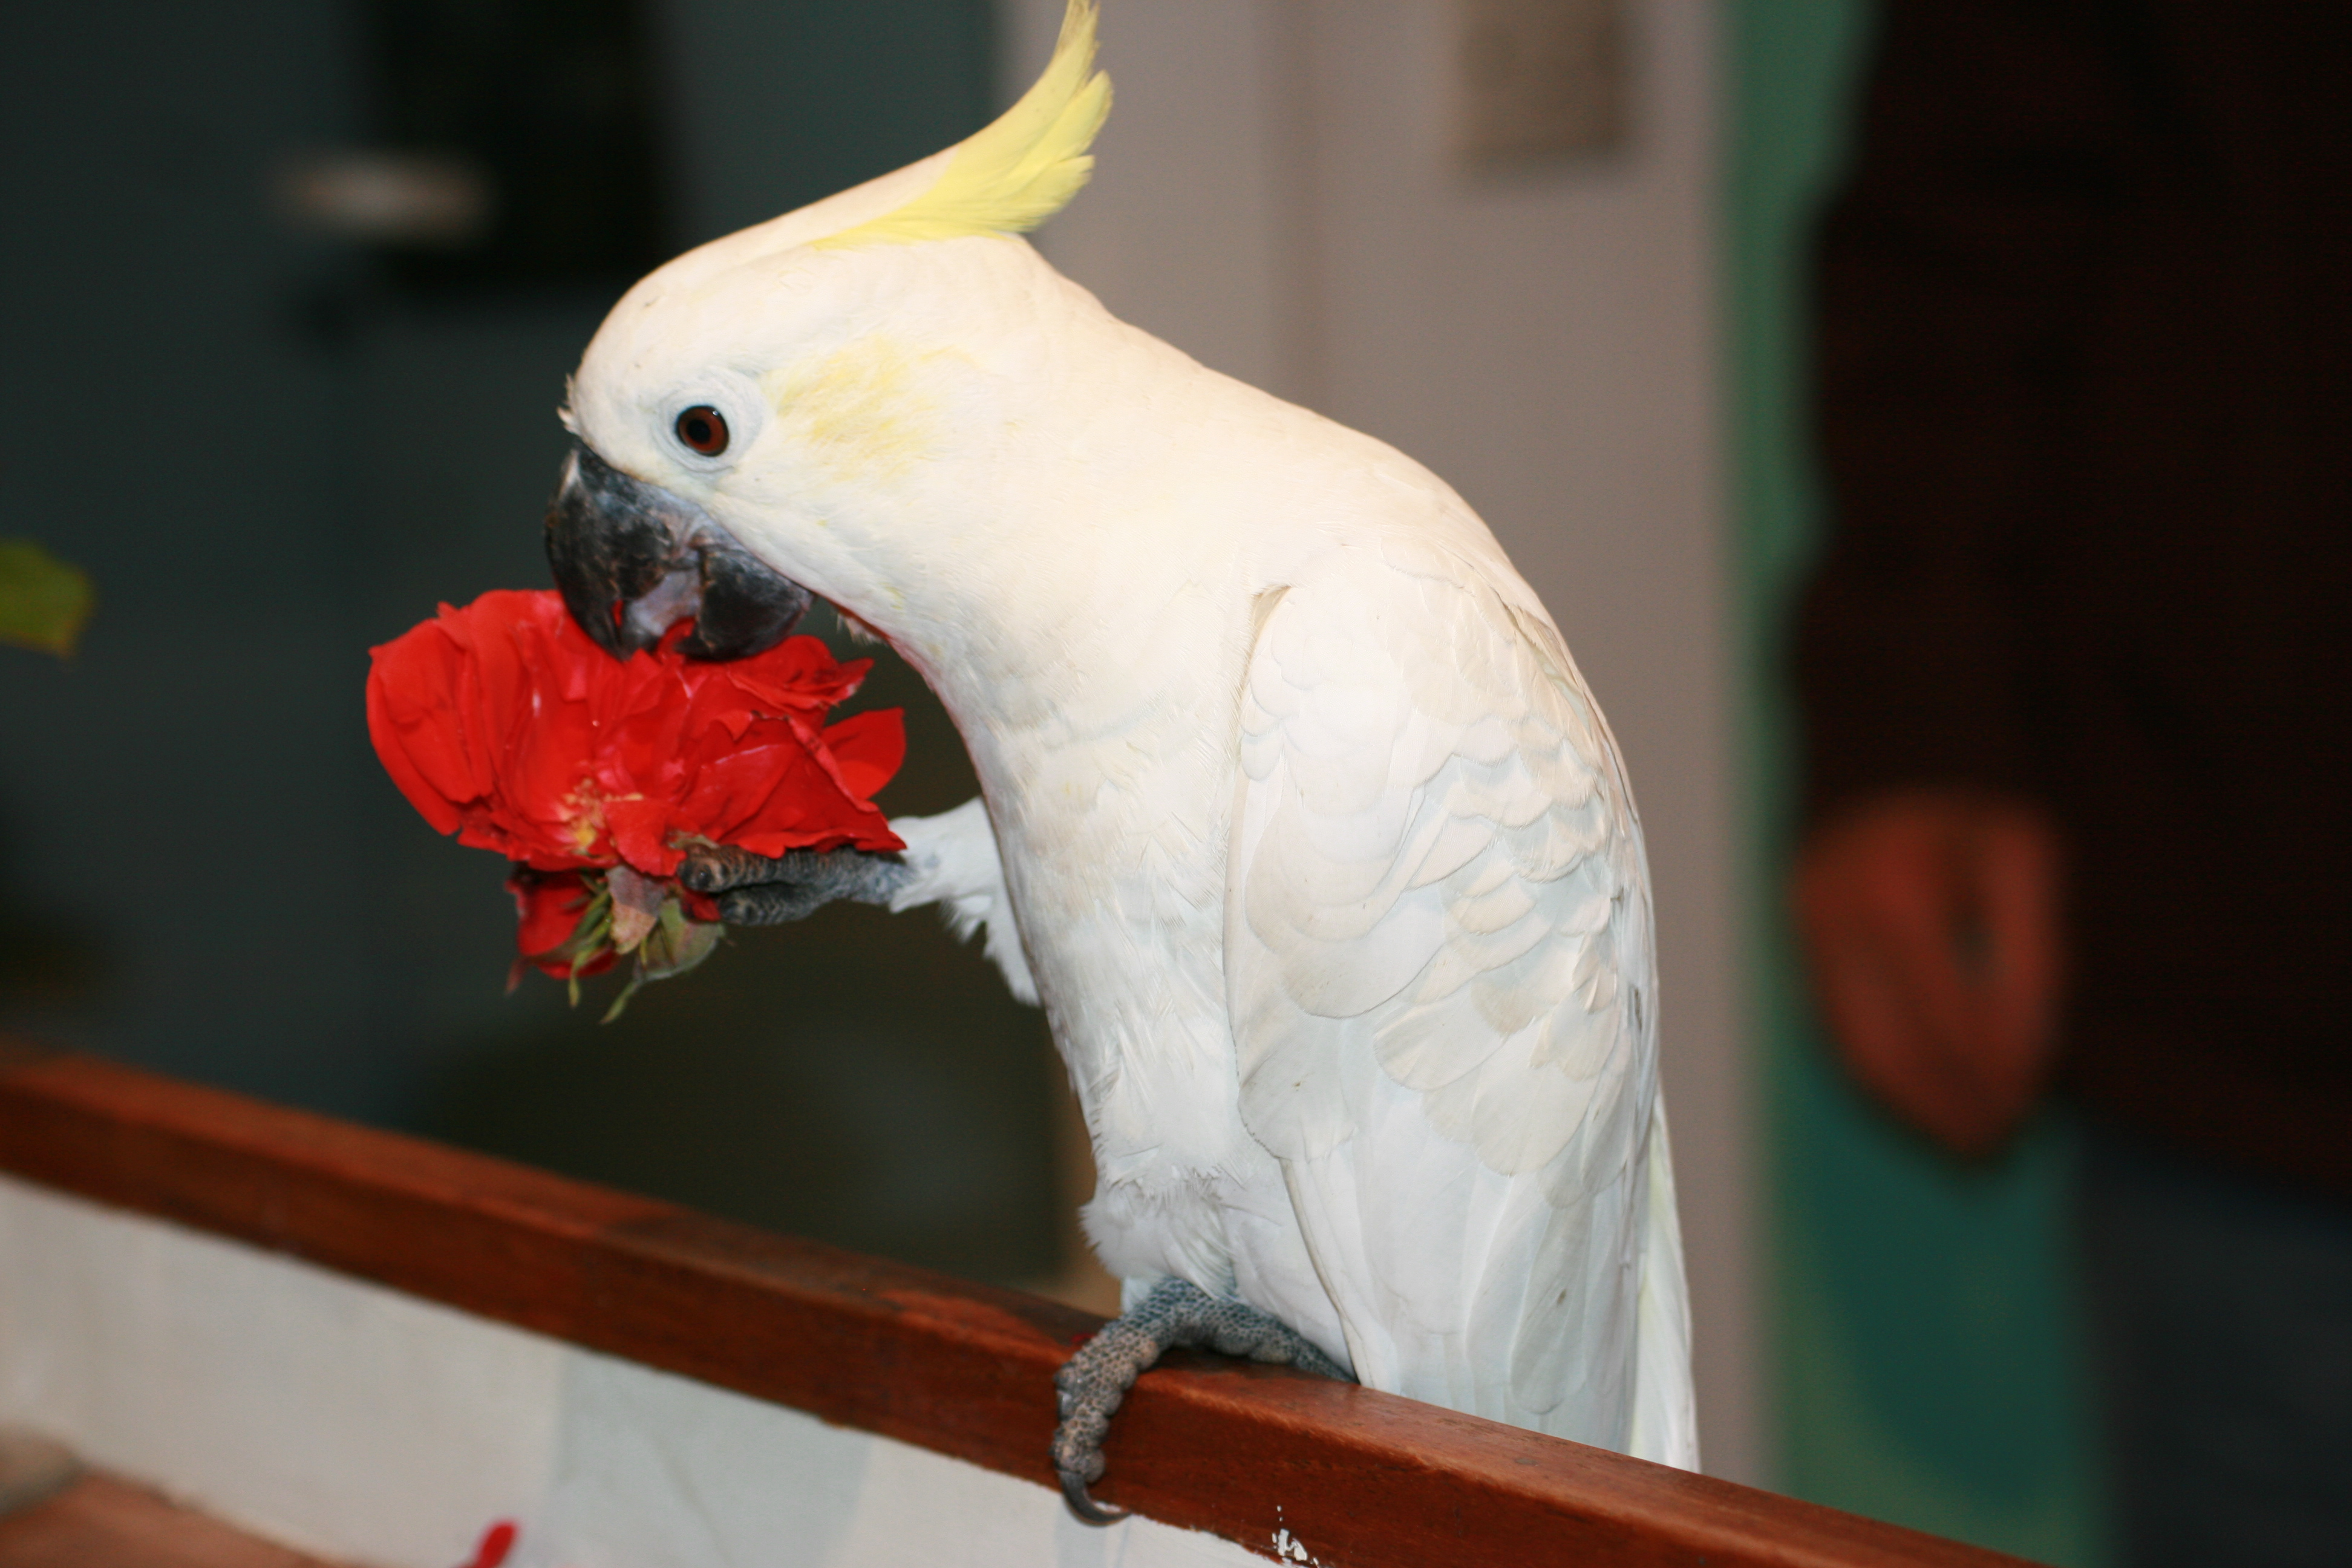 Parrot Diet - What shall I give my Parrot to Eat?